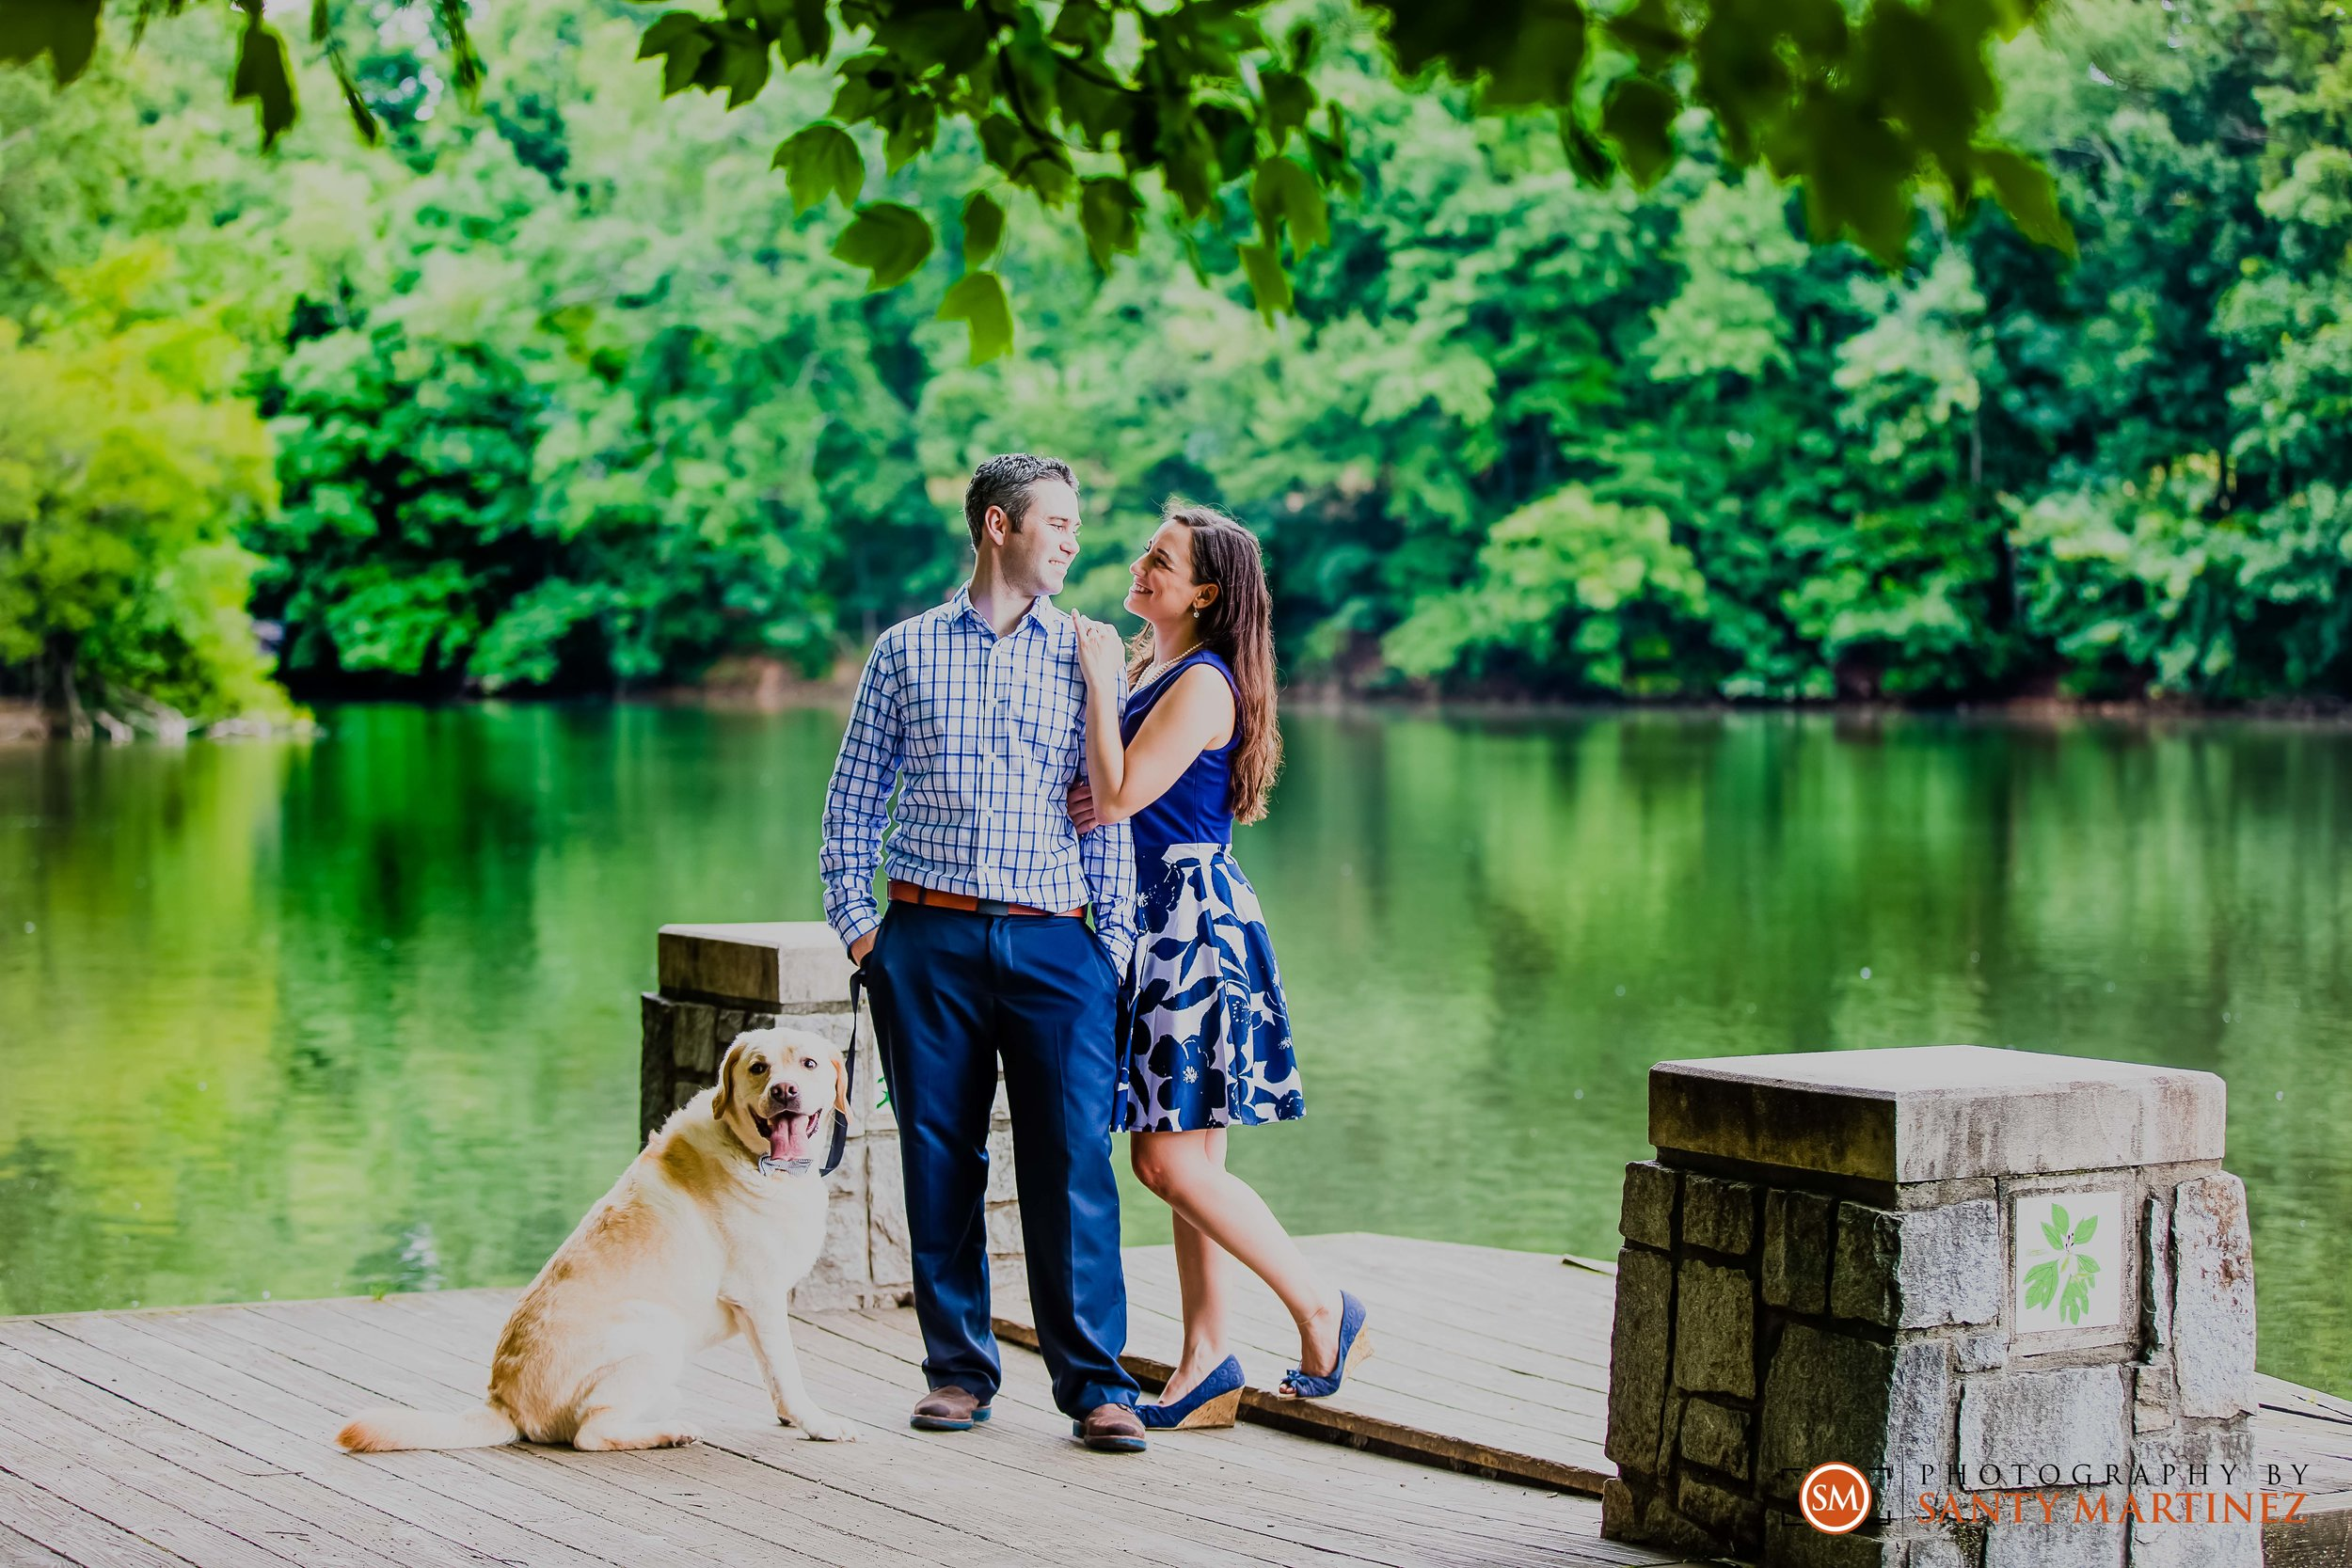 Engagement Session Piedmont Park - Santy Martinez Photography-14.jpg